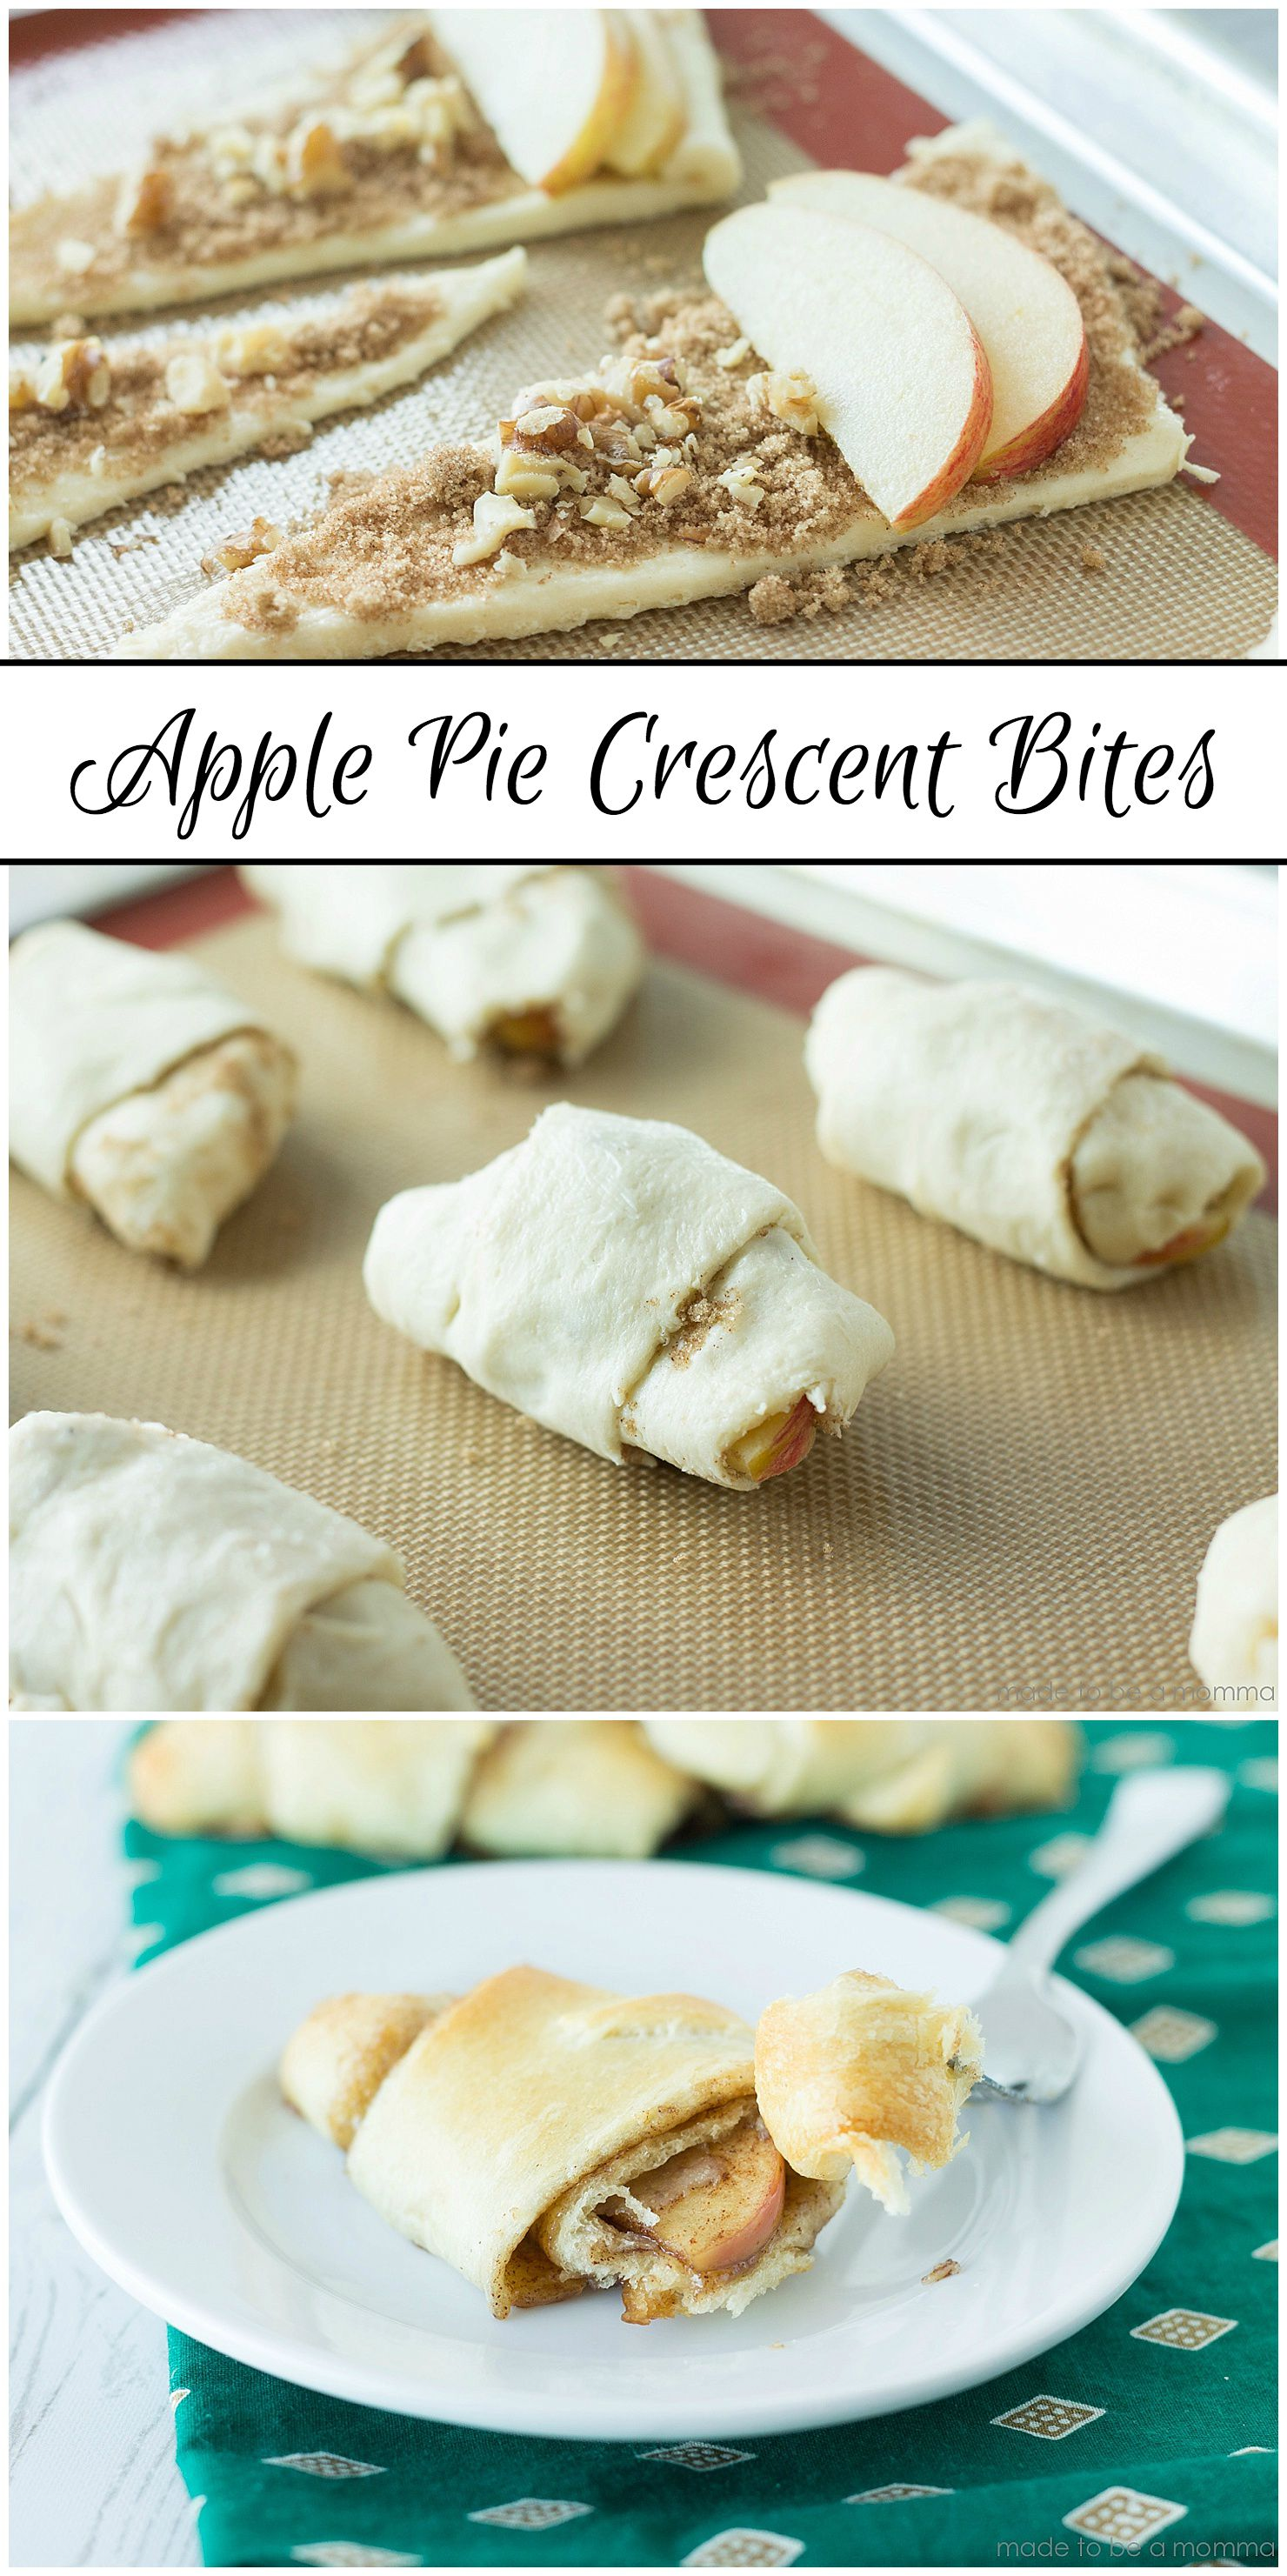 Apple Pie Crescent Bites: recipe at madetobeamomma.com